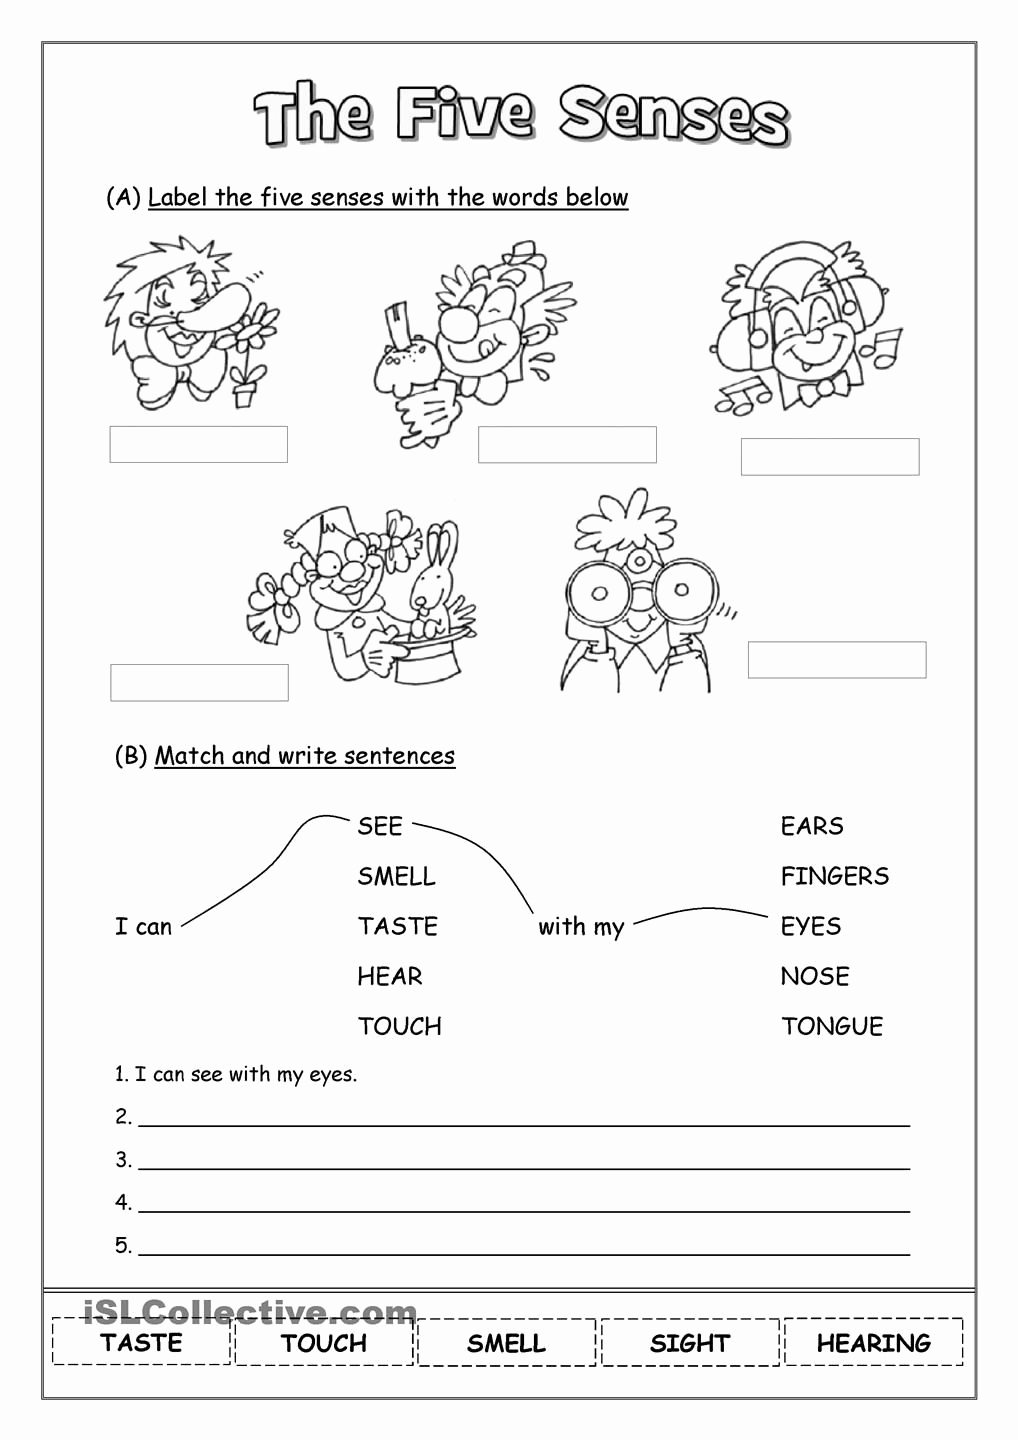 The Five Senses Worksheets Lovely the Five Senses Kids Learning